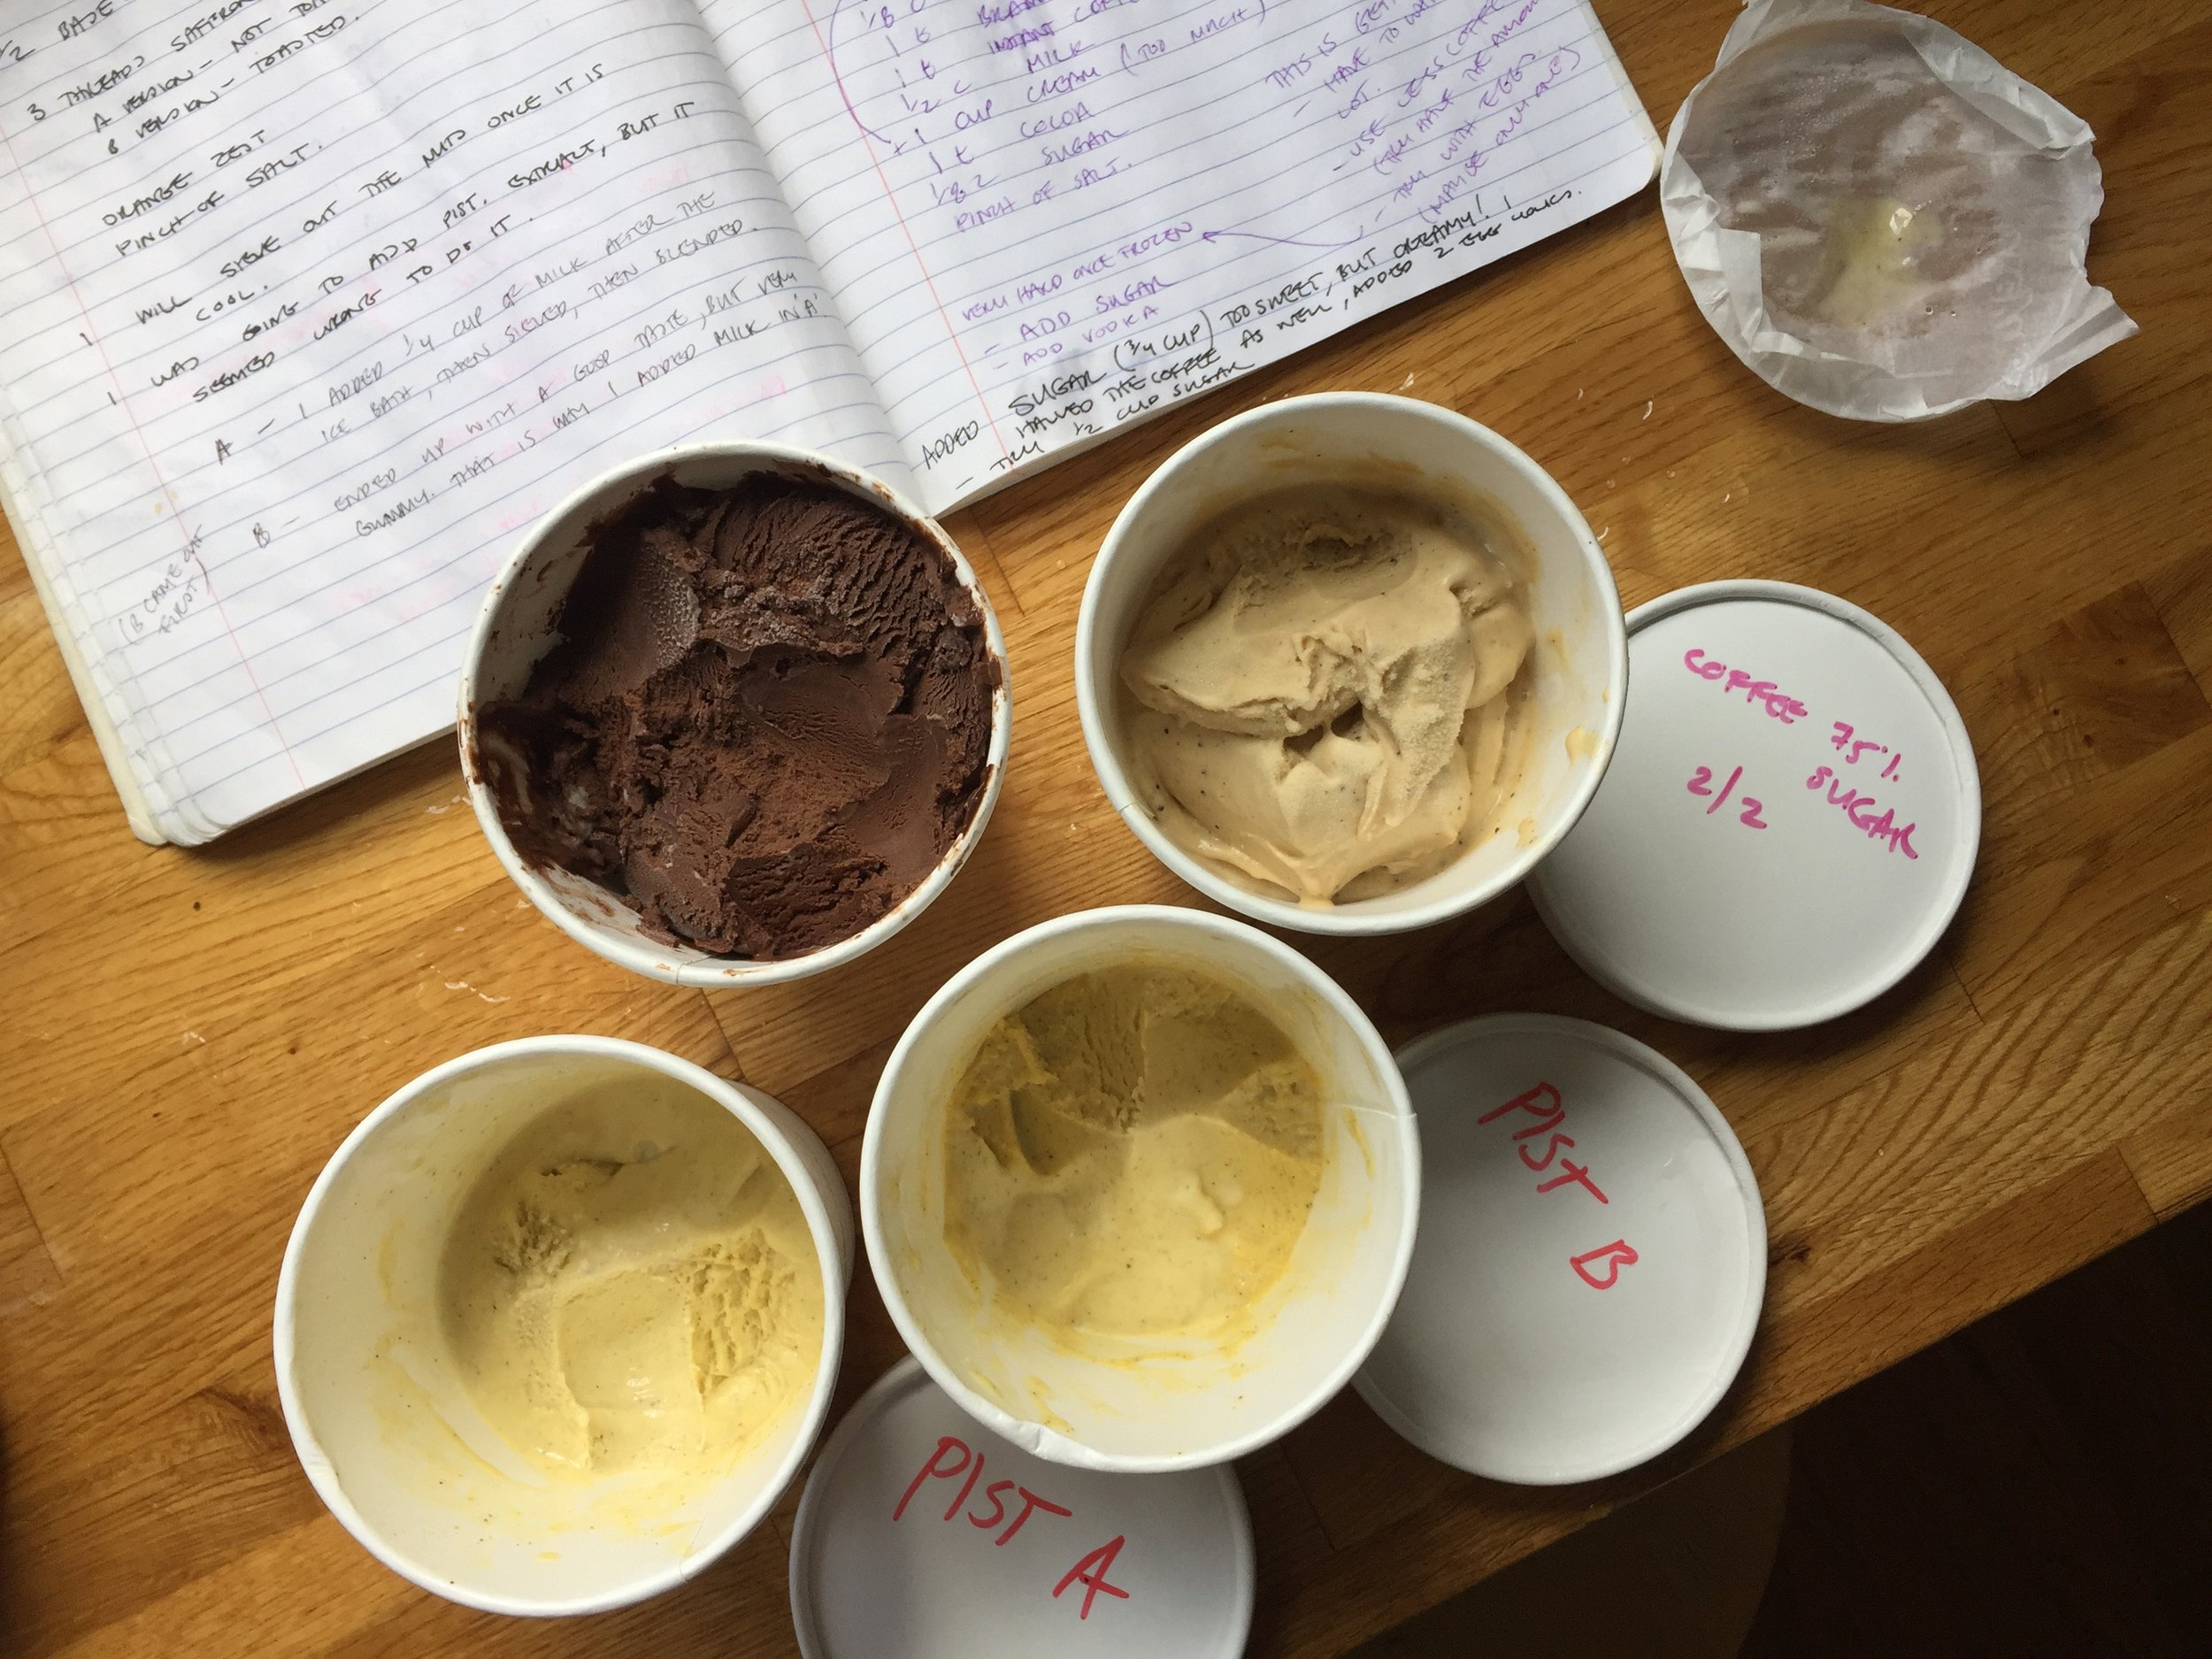 Taste testing the many many flavors of What is Real Ice Cream....Fun and Yum!